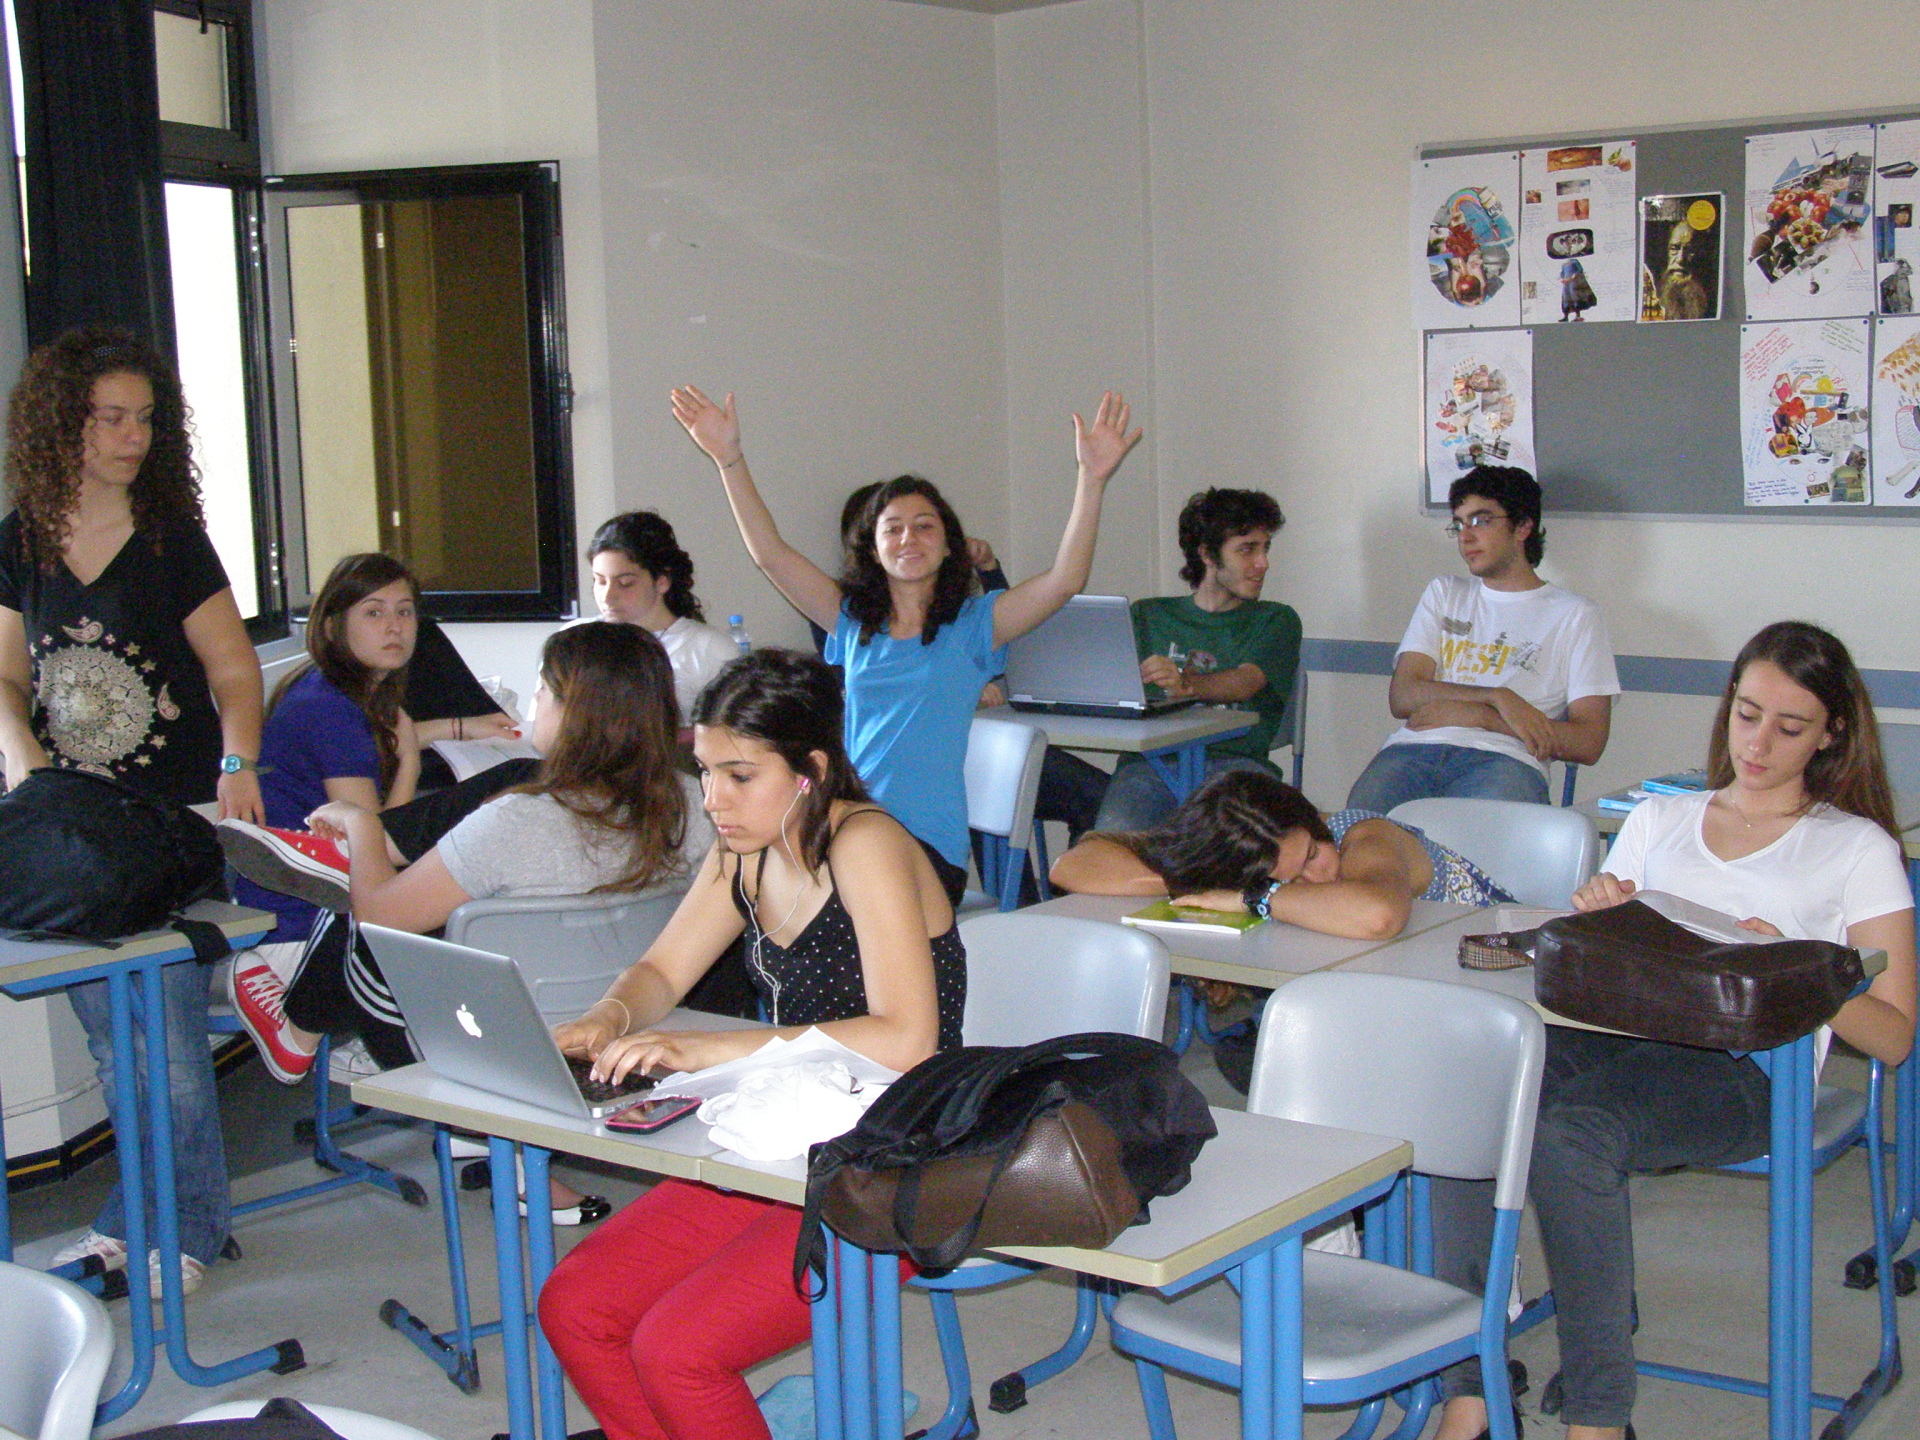 Koç students kick back, filling time between exams. Istanbul, Turkey: chapter 36, You must only to love them. http://mershon.wordpress.com